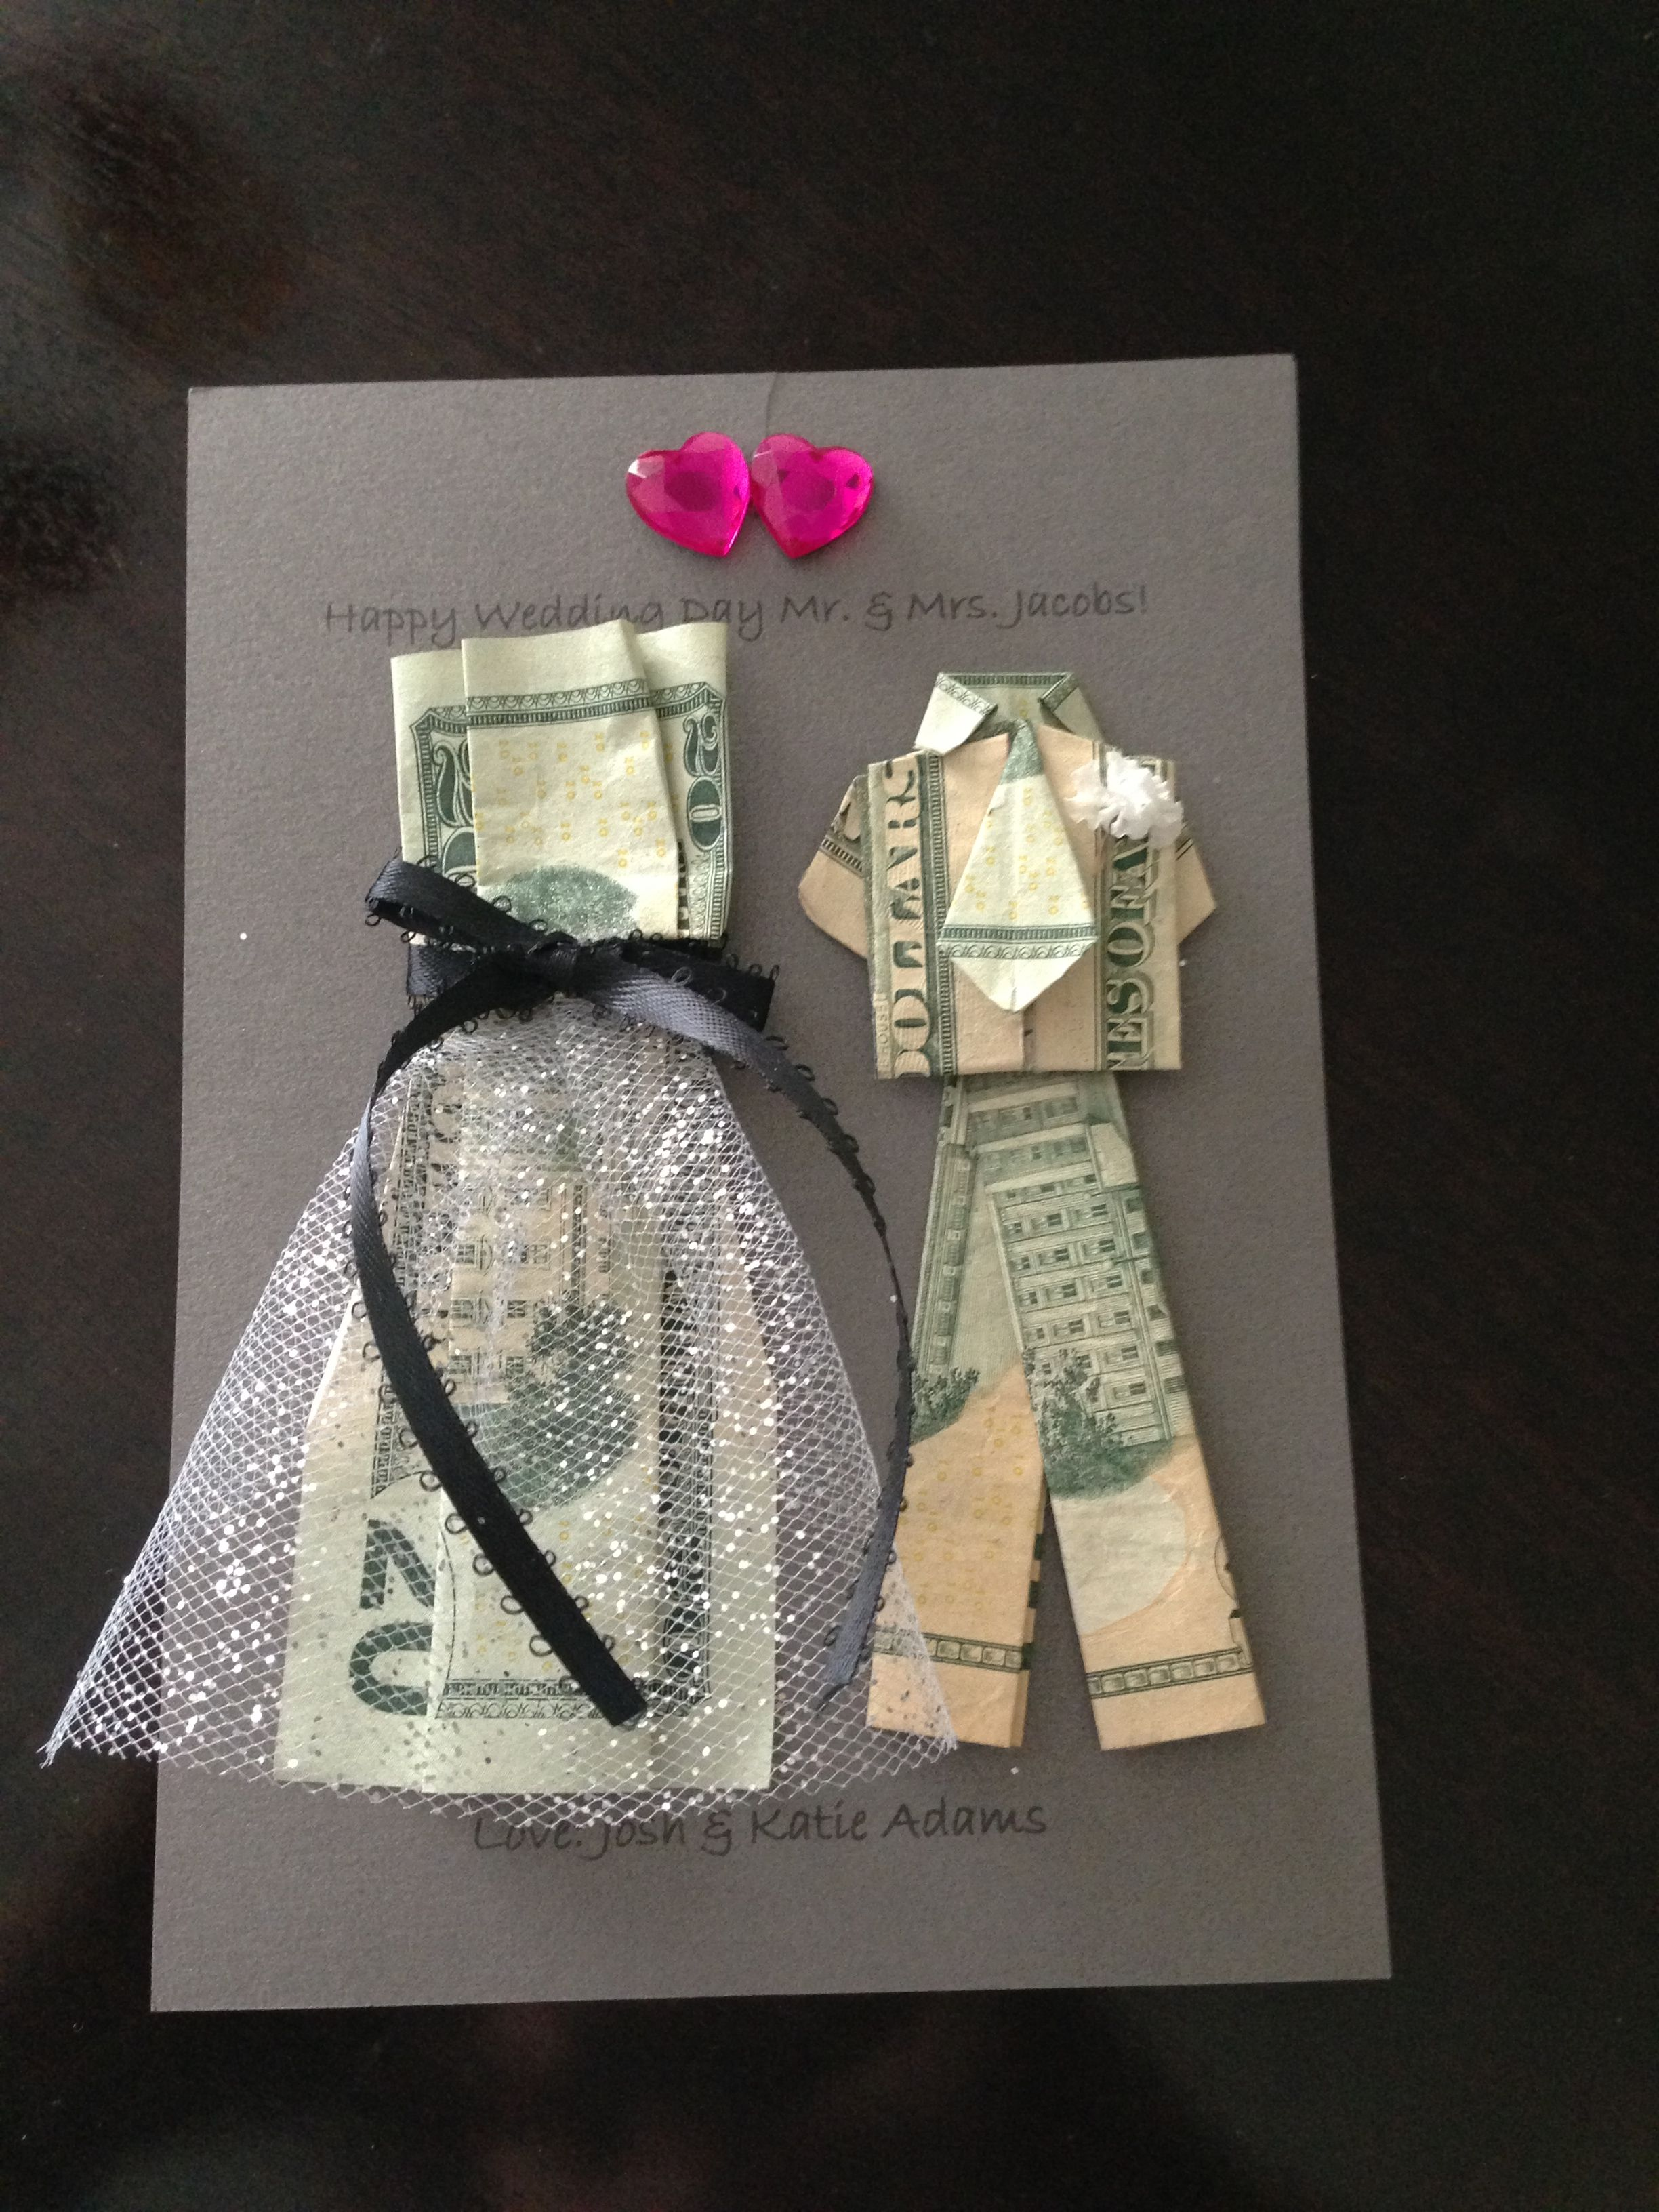 Wedding Gift Poem For Dollars : Money Gifts on Pinterest Money Gift Wedding, Wedding Gift Poem ...